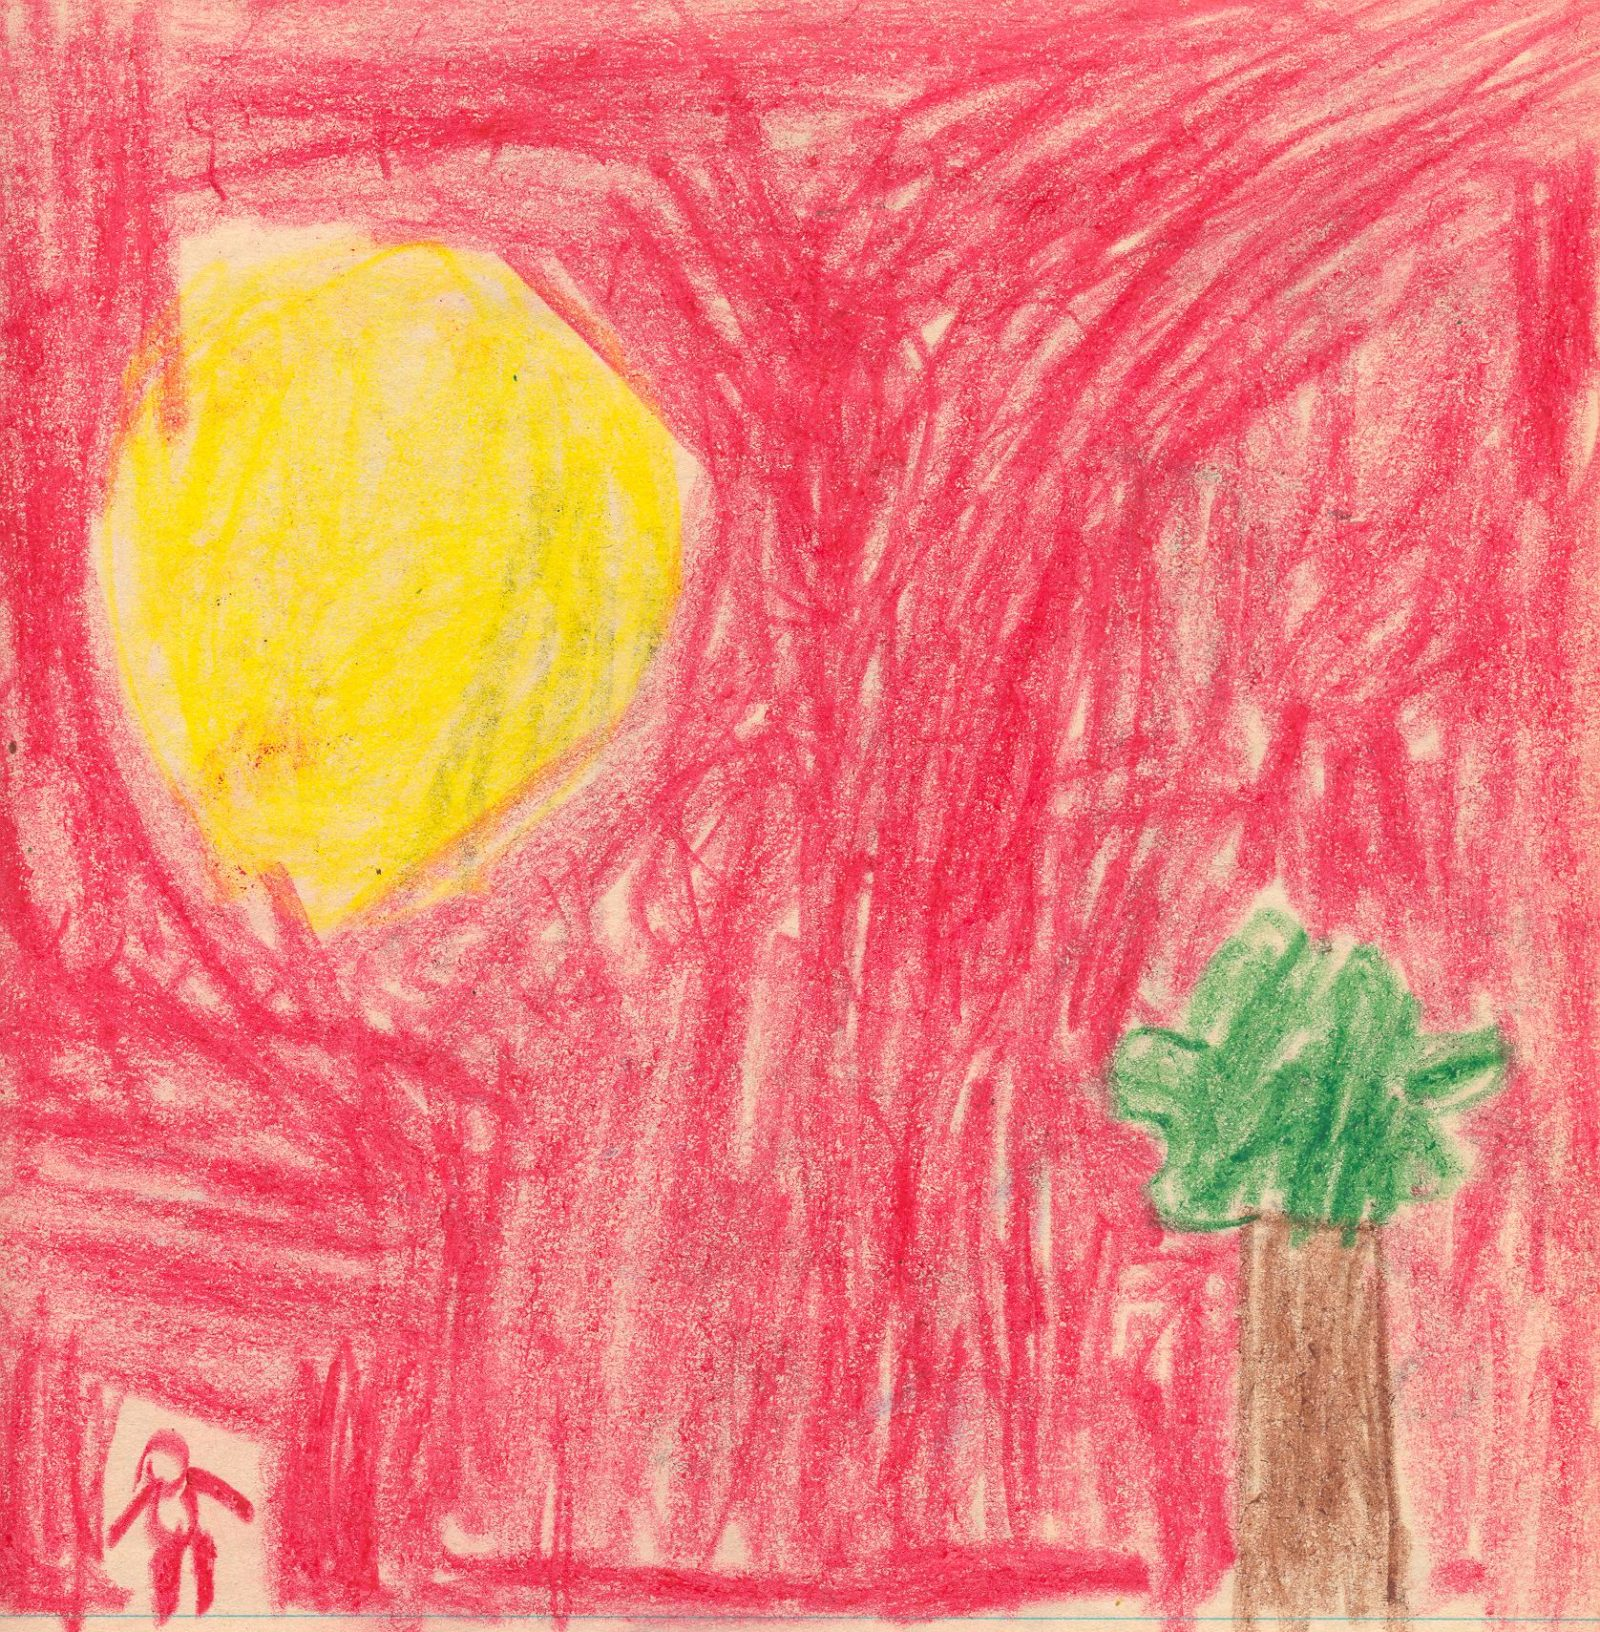 Drawing of a sun and tree